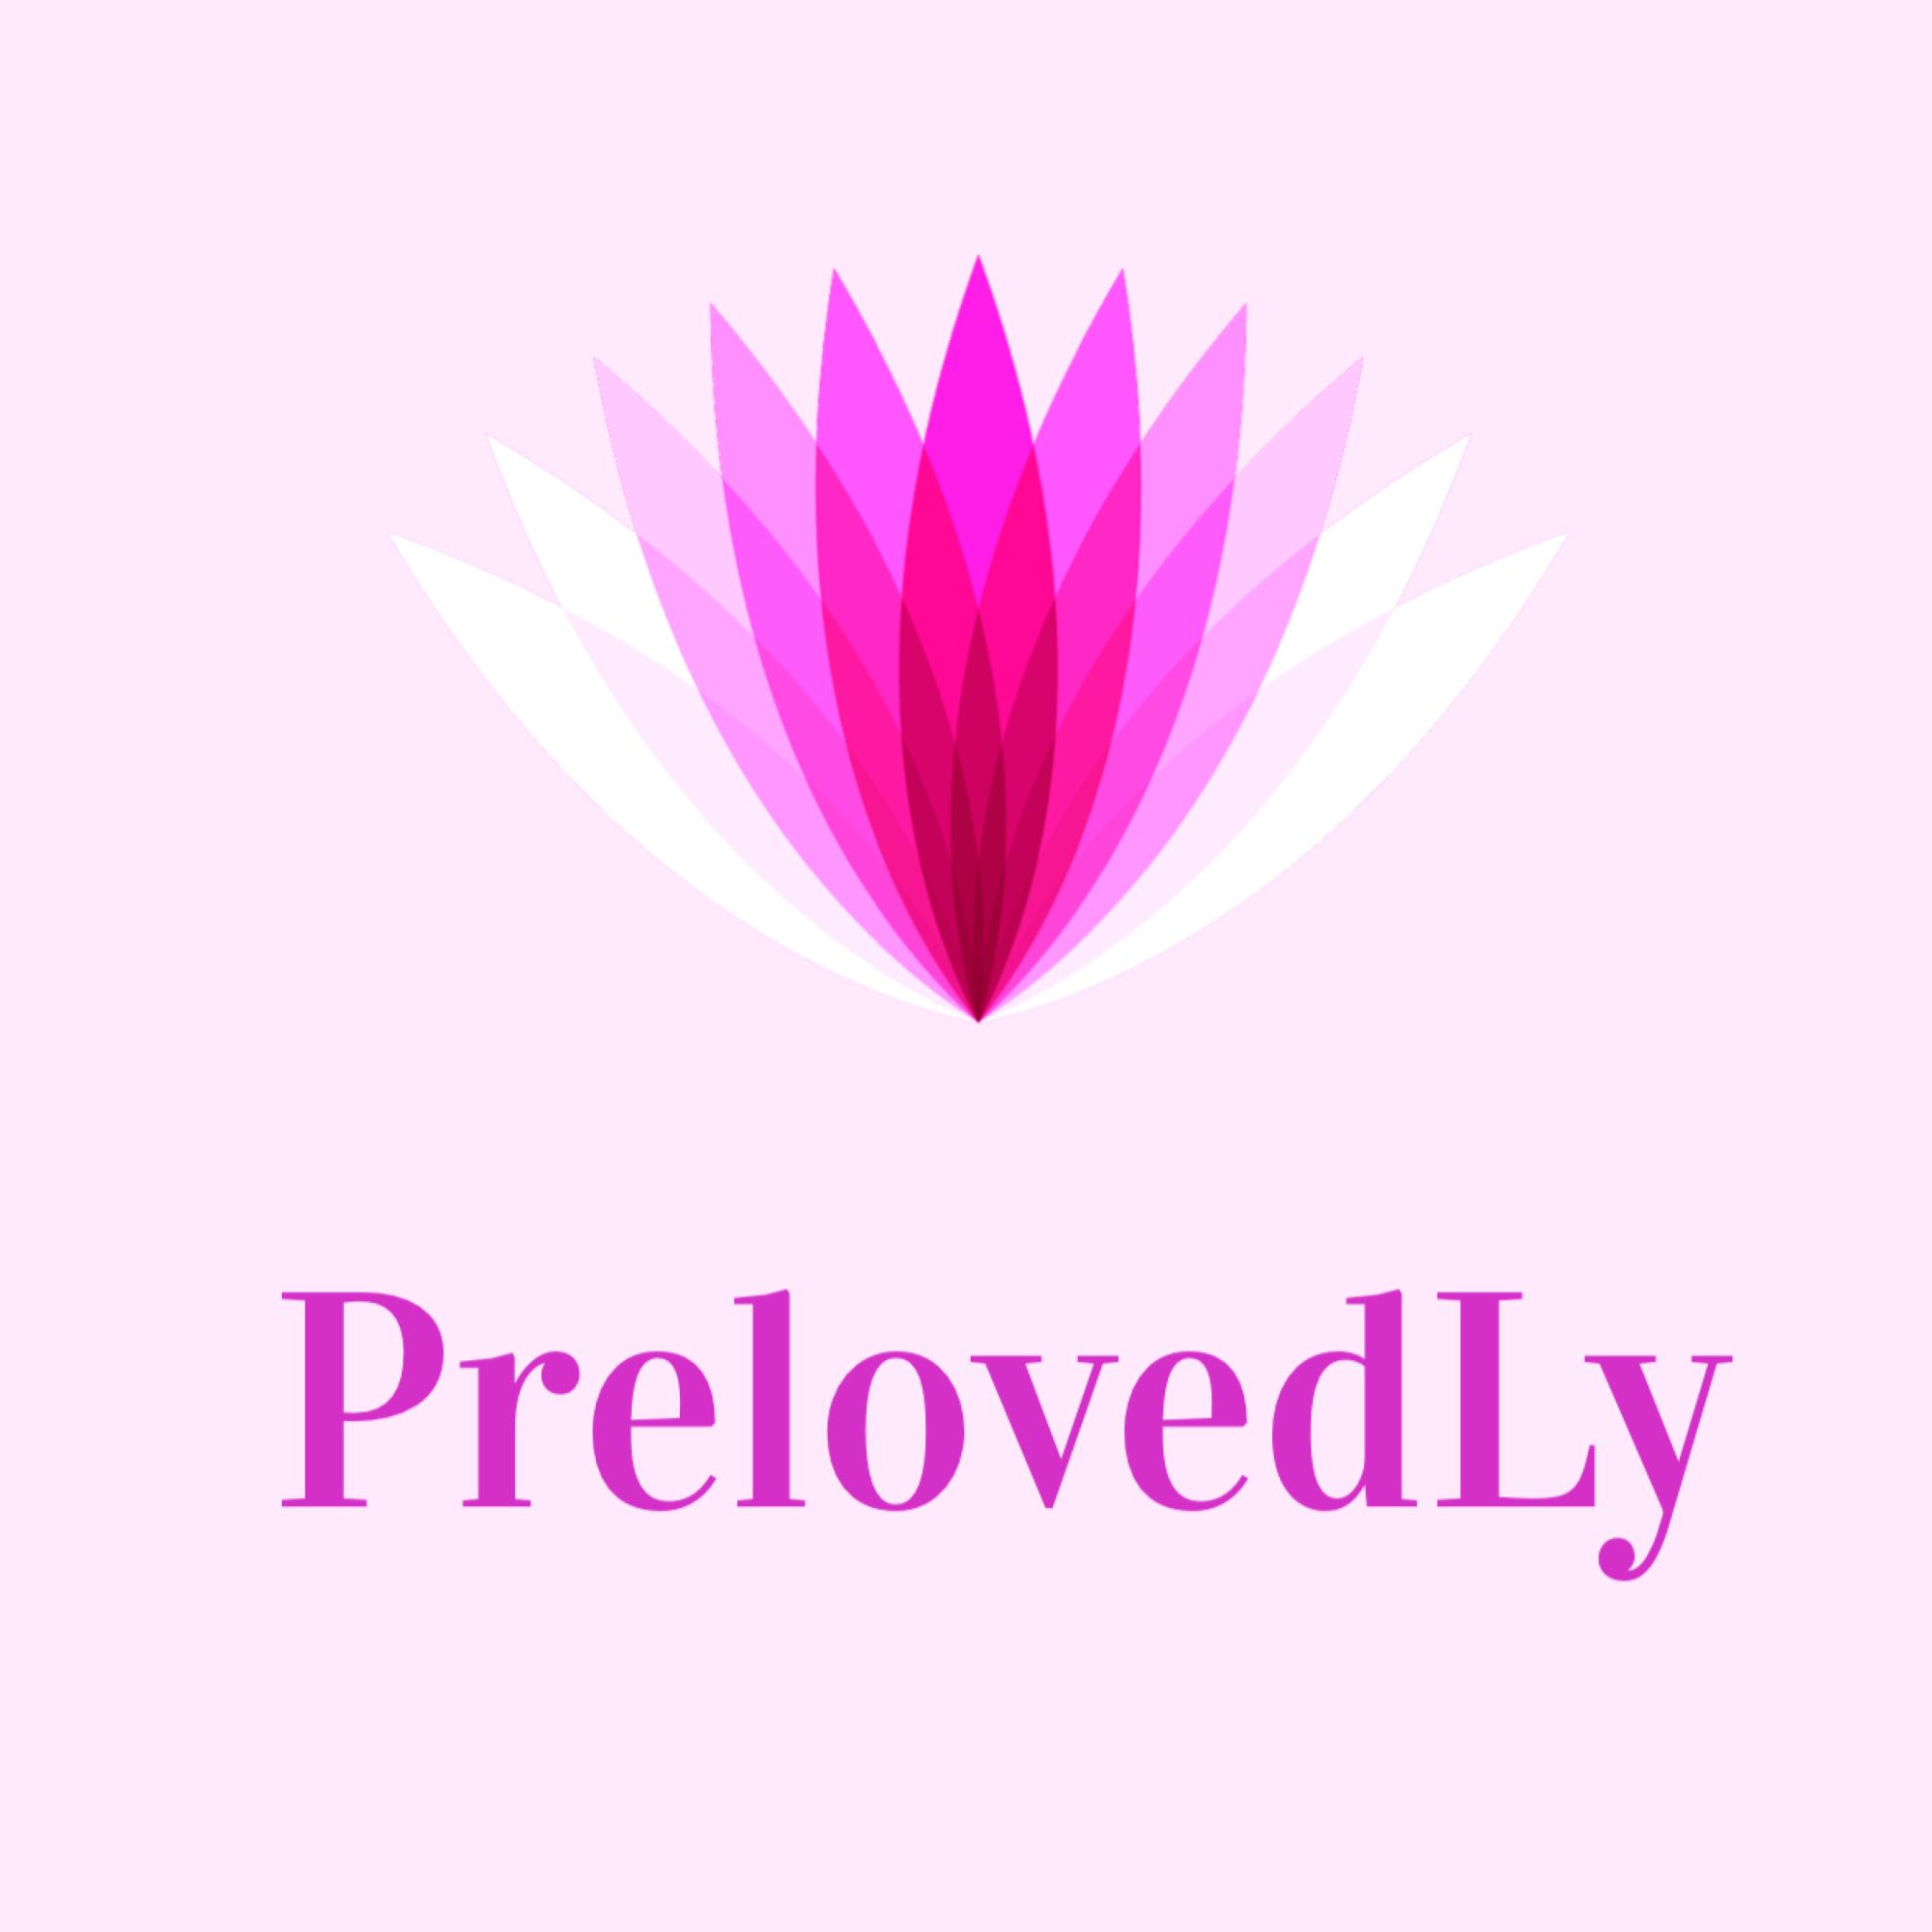 prelovedly_monk